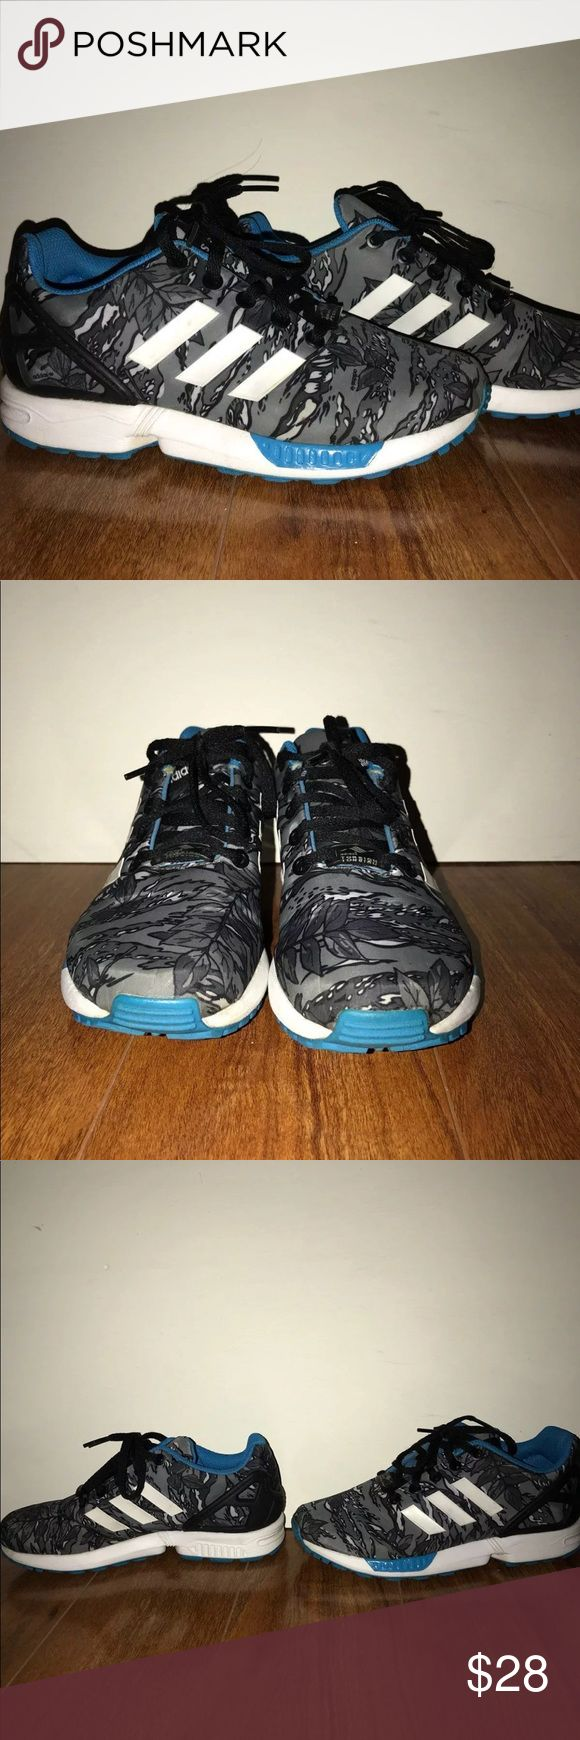 Adidas Sneakers Adidas torsion (zx flux) sneakers  Gray and blue plant print Super comfortable  Pretty good condition   (I am a size 5 but these are a 4 in boys and fit well) adidas Shoes Athletic Shoes